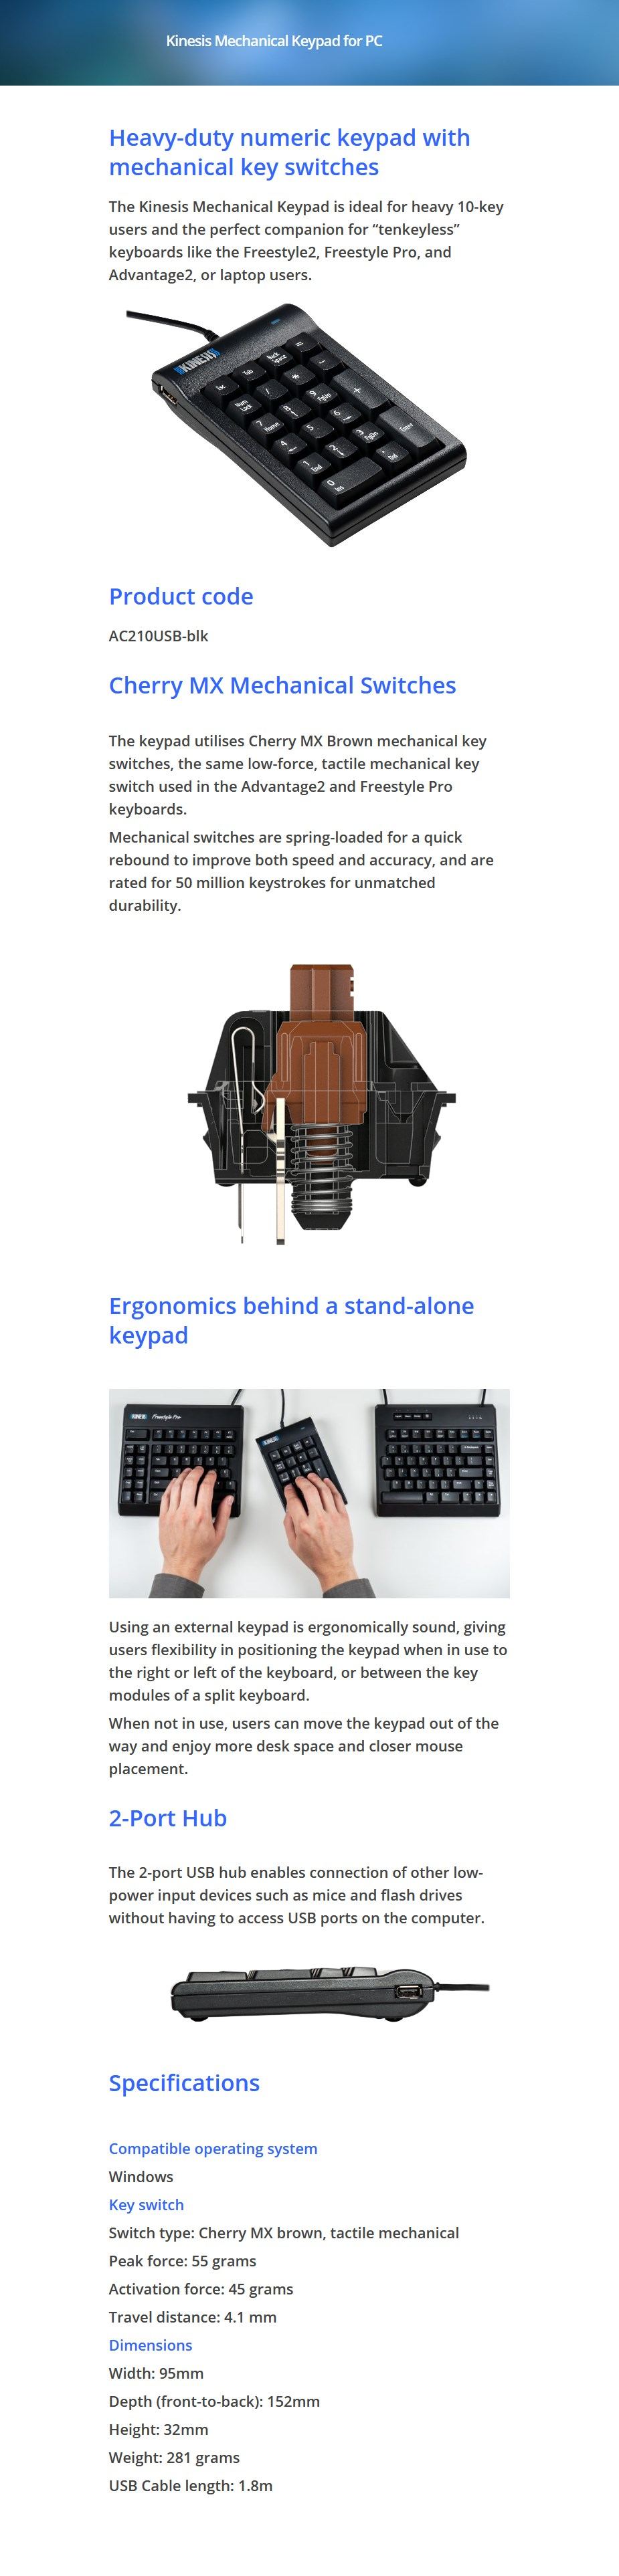 Kinesis AC210USB-blk Mechanical Keypad for PC - Overview 1